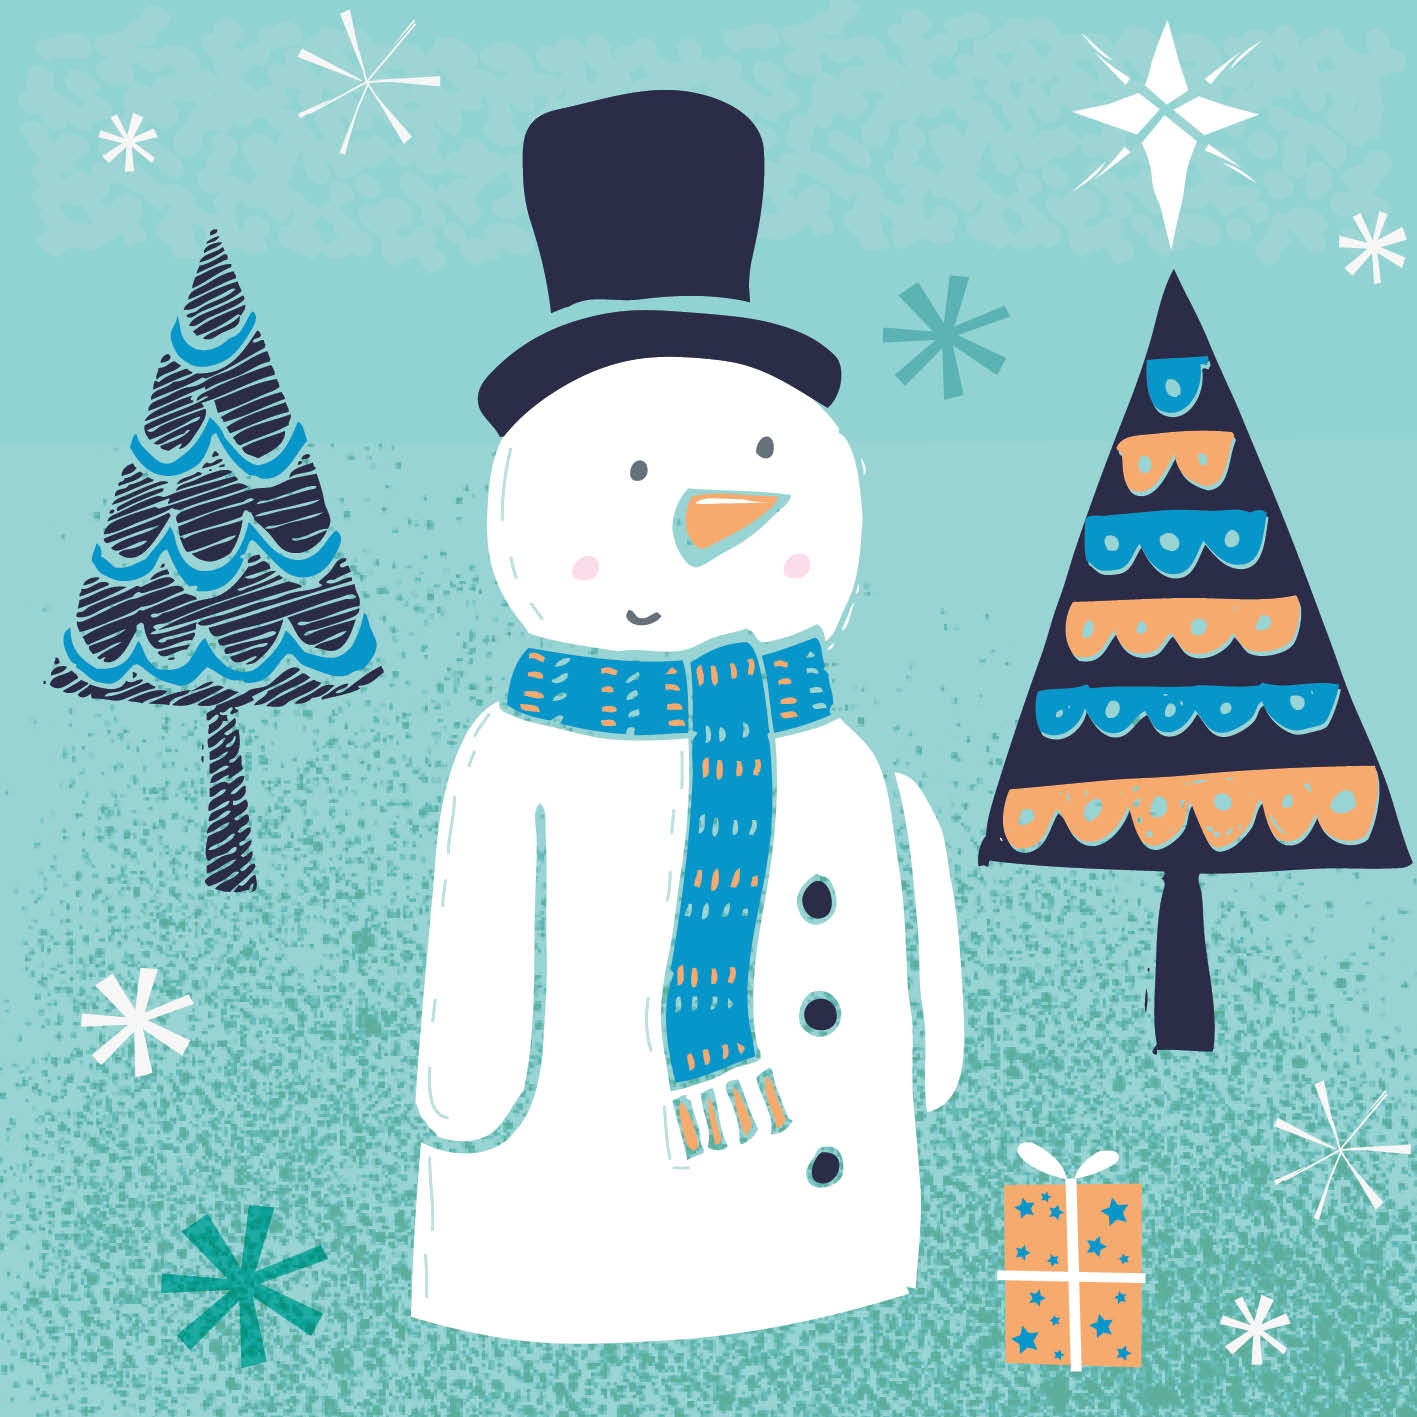 Snowman with Hat - Christmas Card